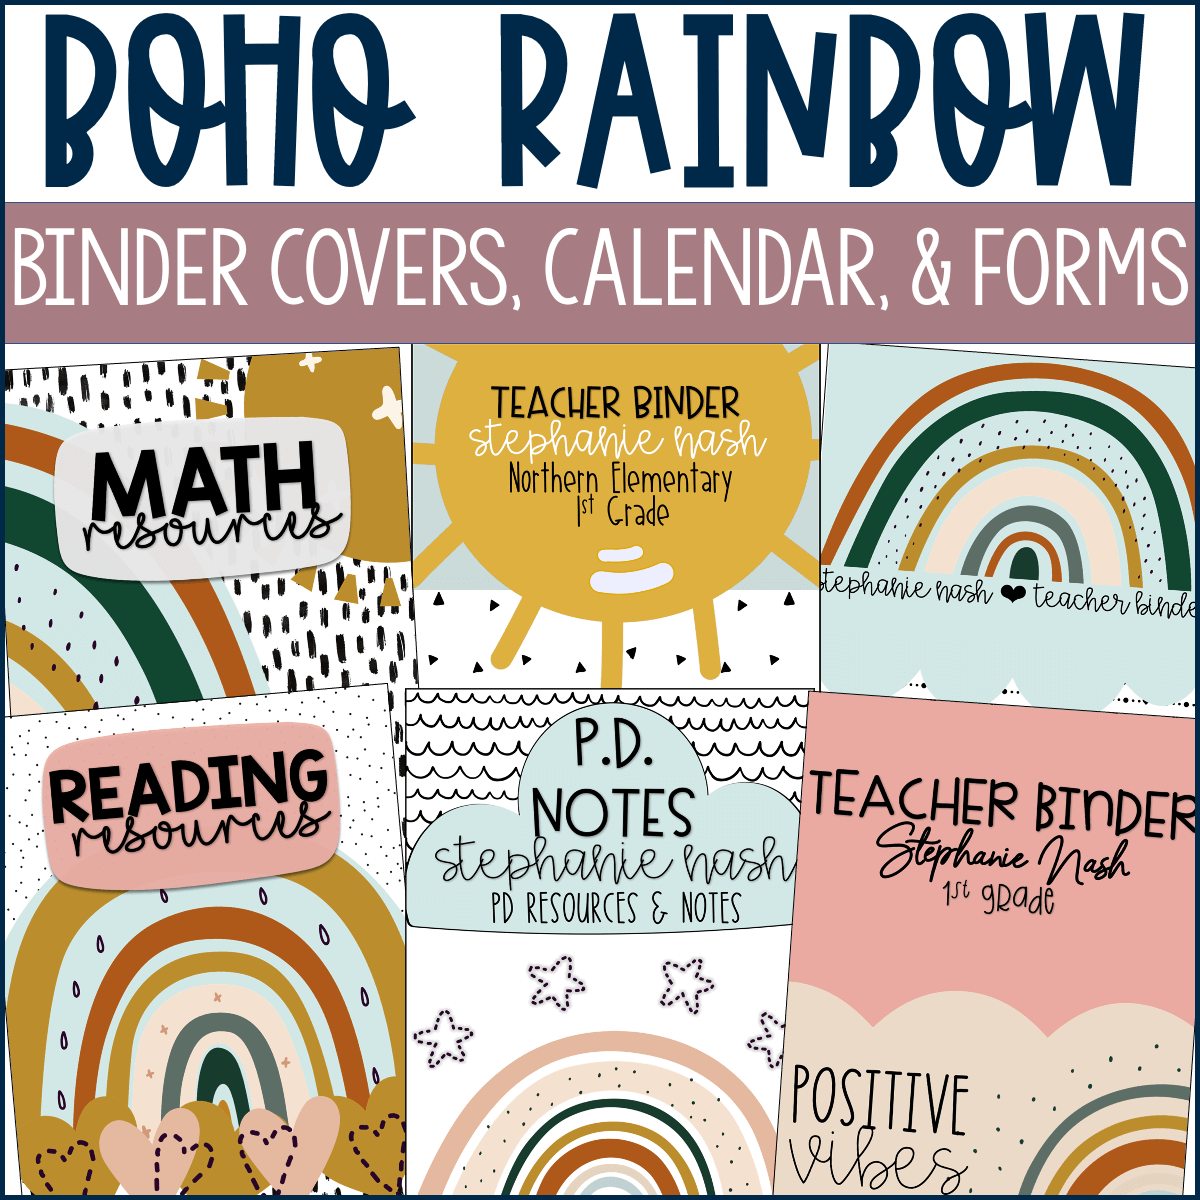 Use these Boho Rainbow binder covers, calendars and forms to bring your classroom organization ideas to life.